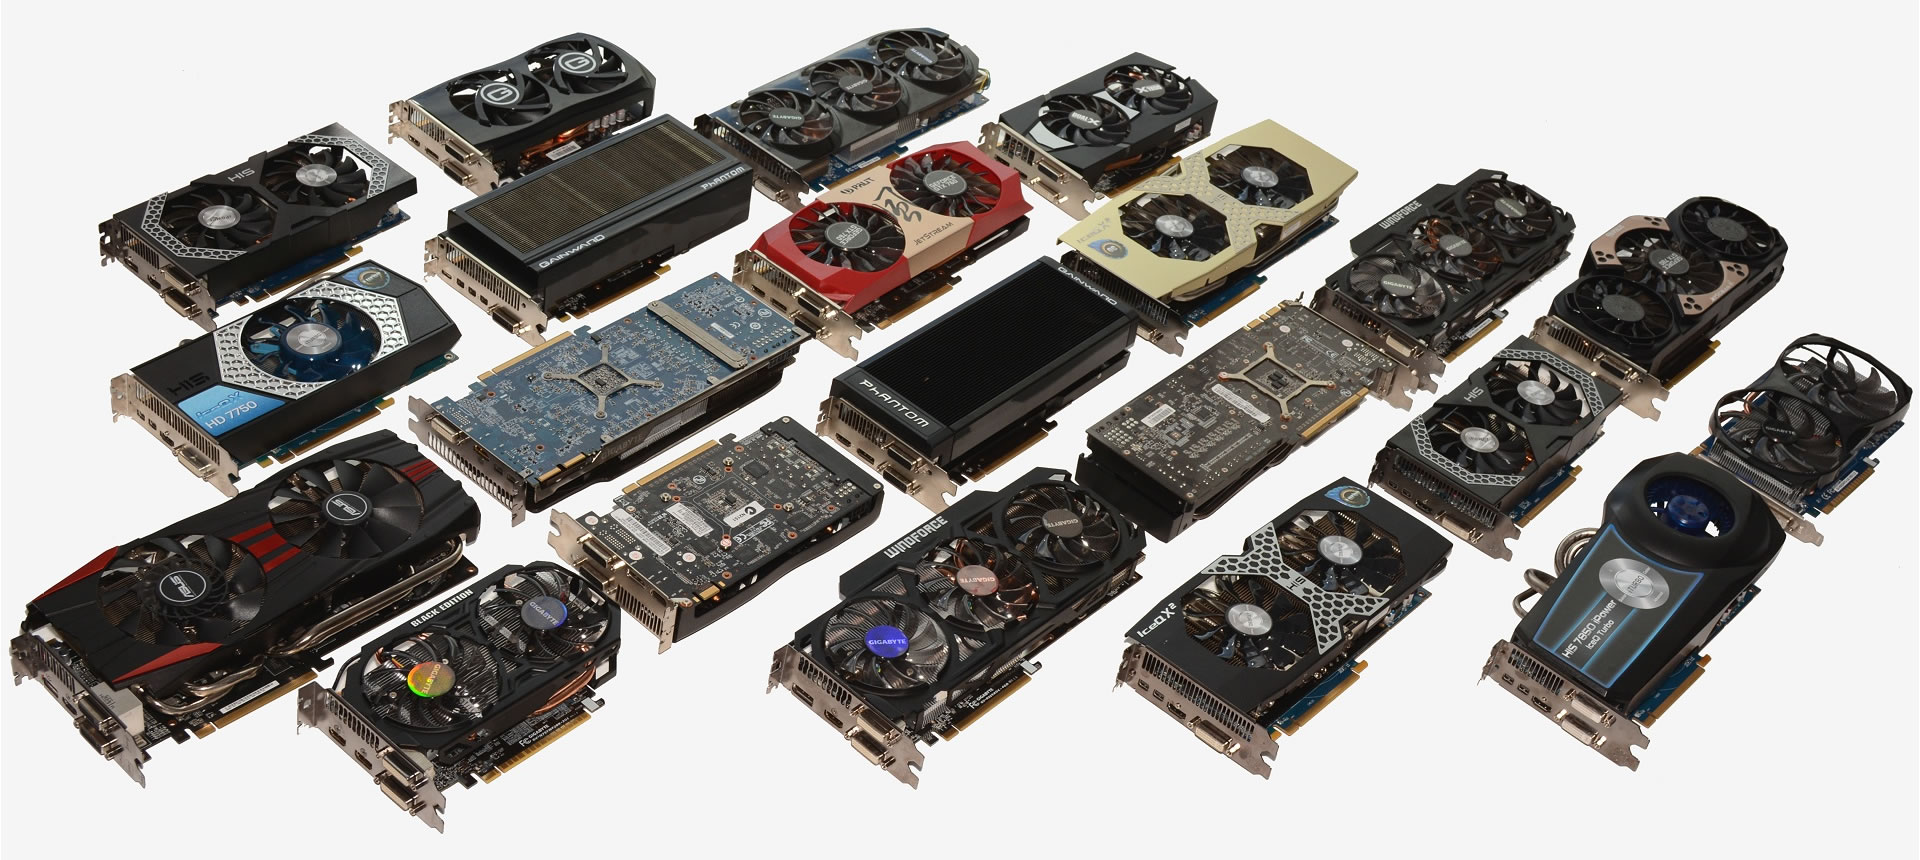 GPUs of all makes and models